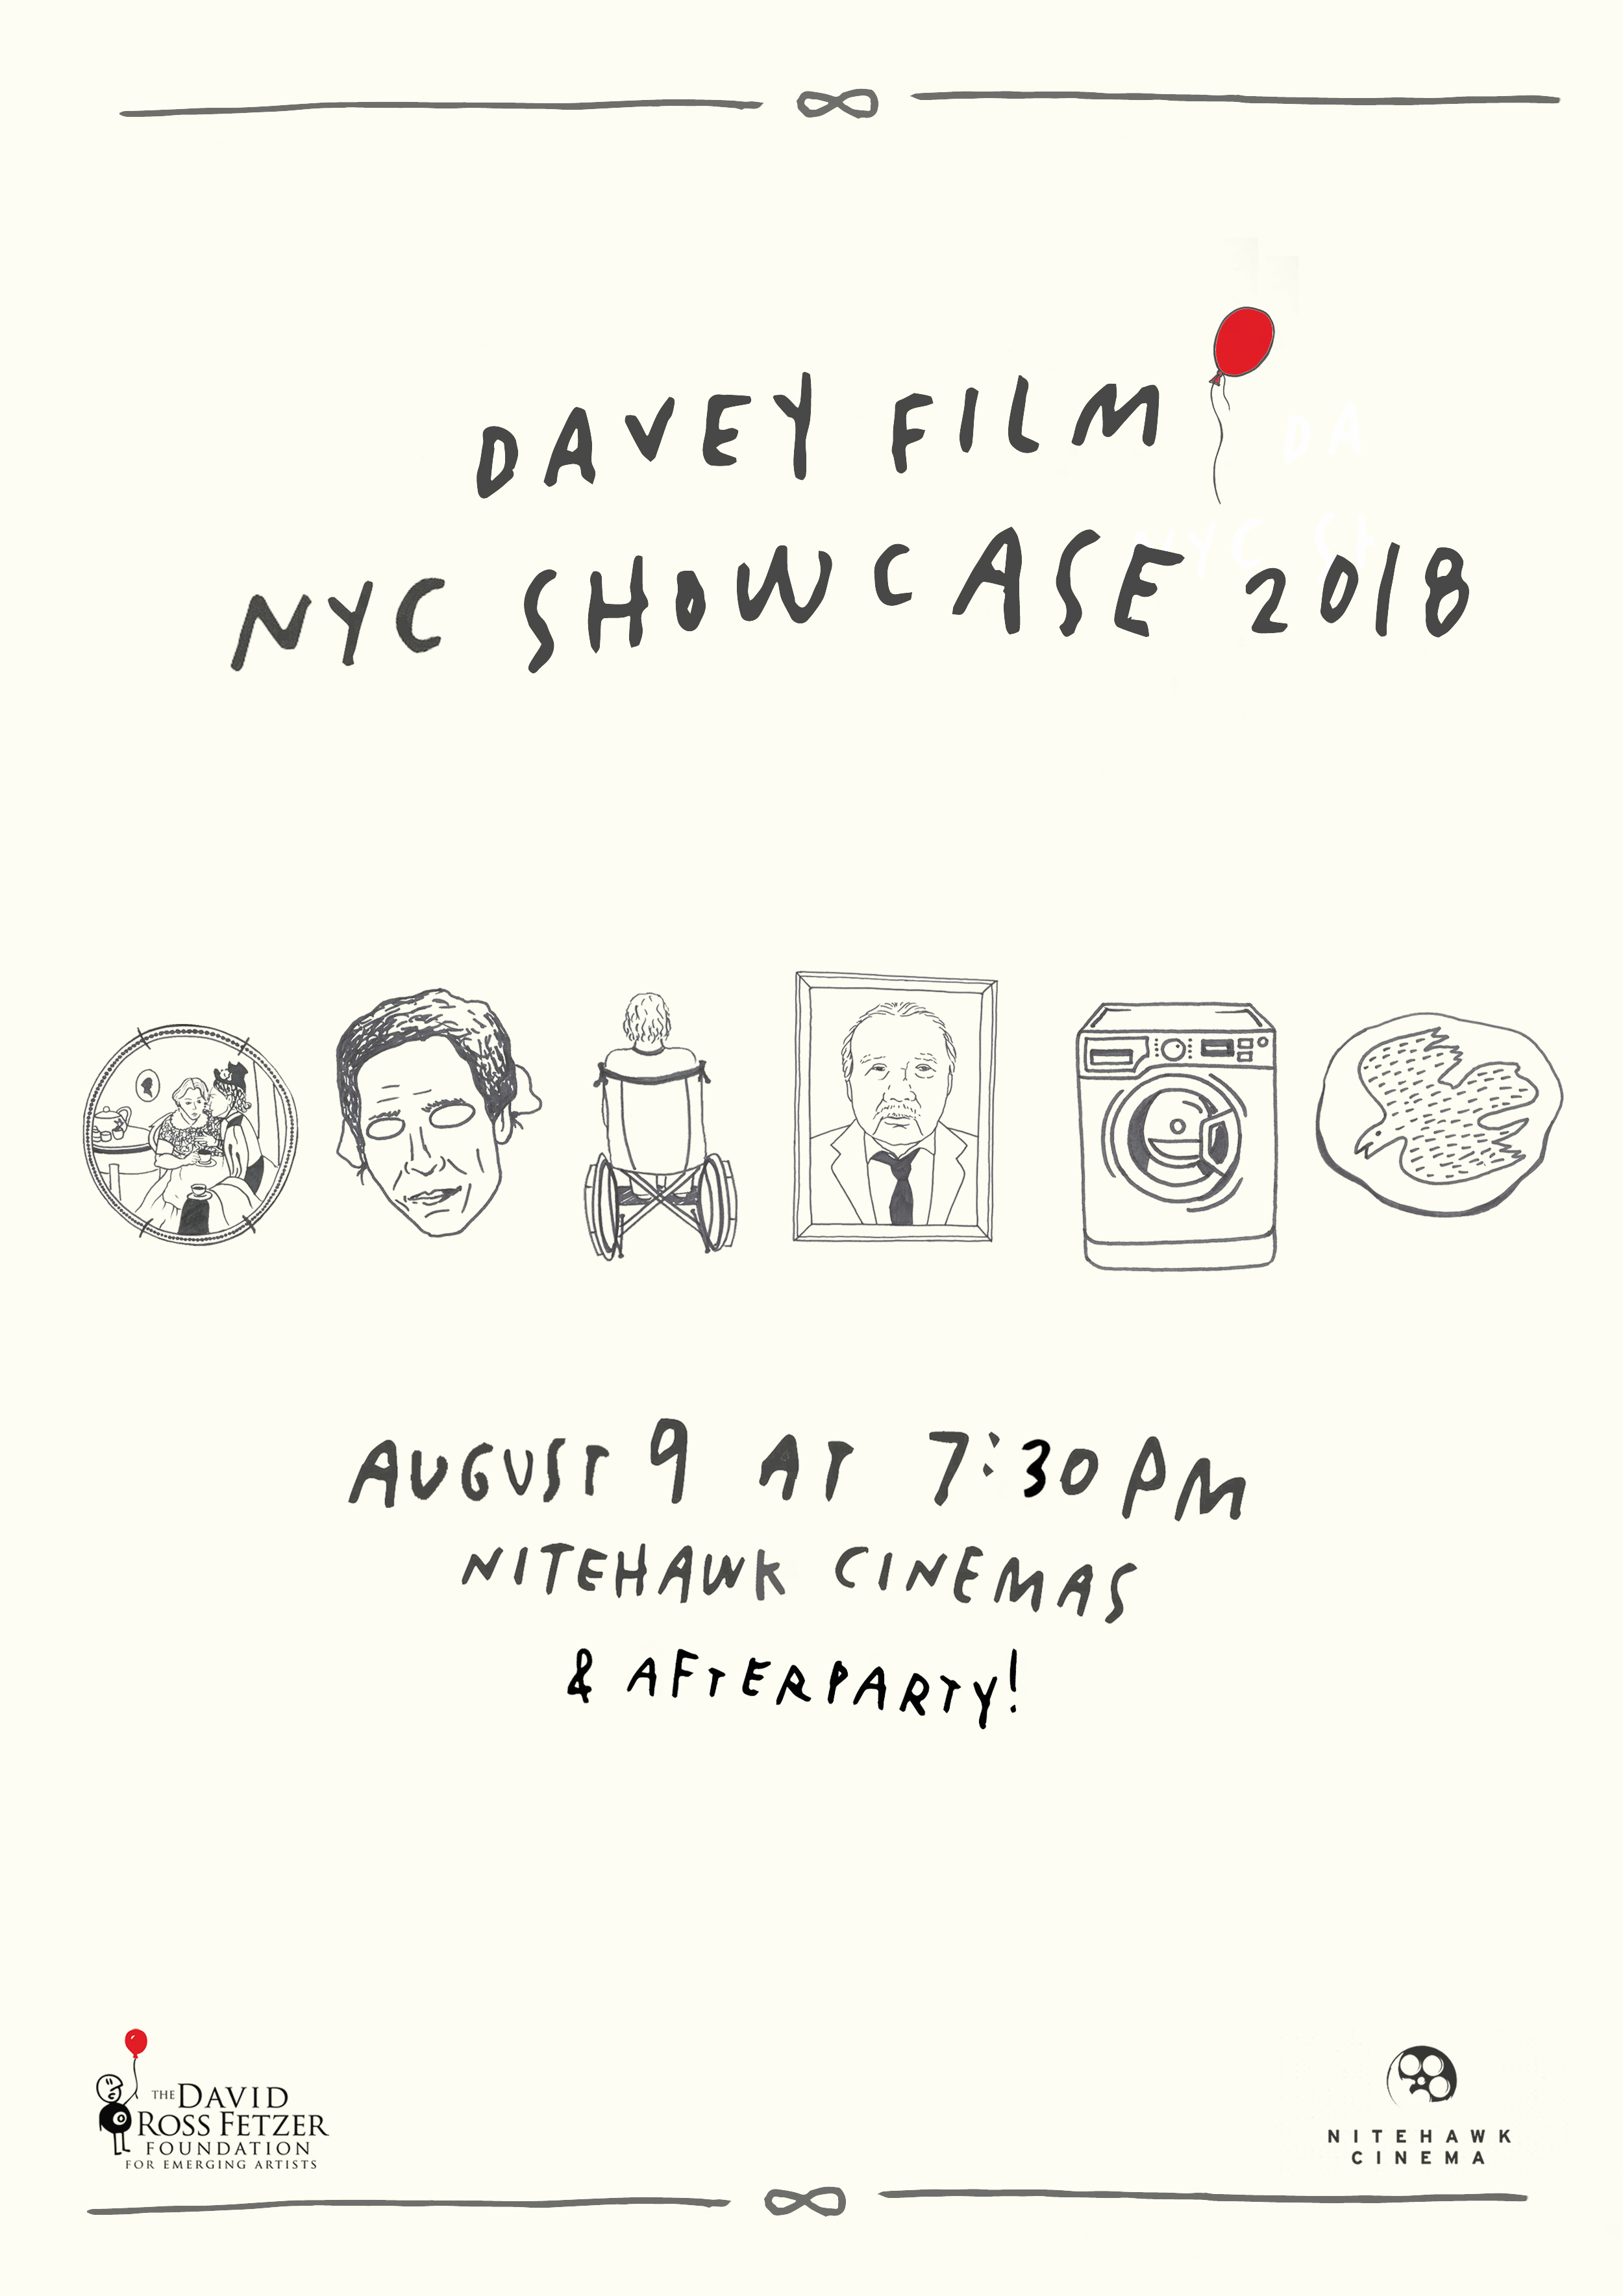 Poster for Davey Film NYC Showcase 2018